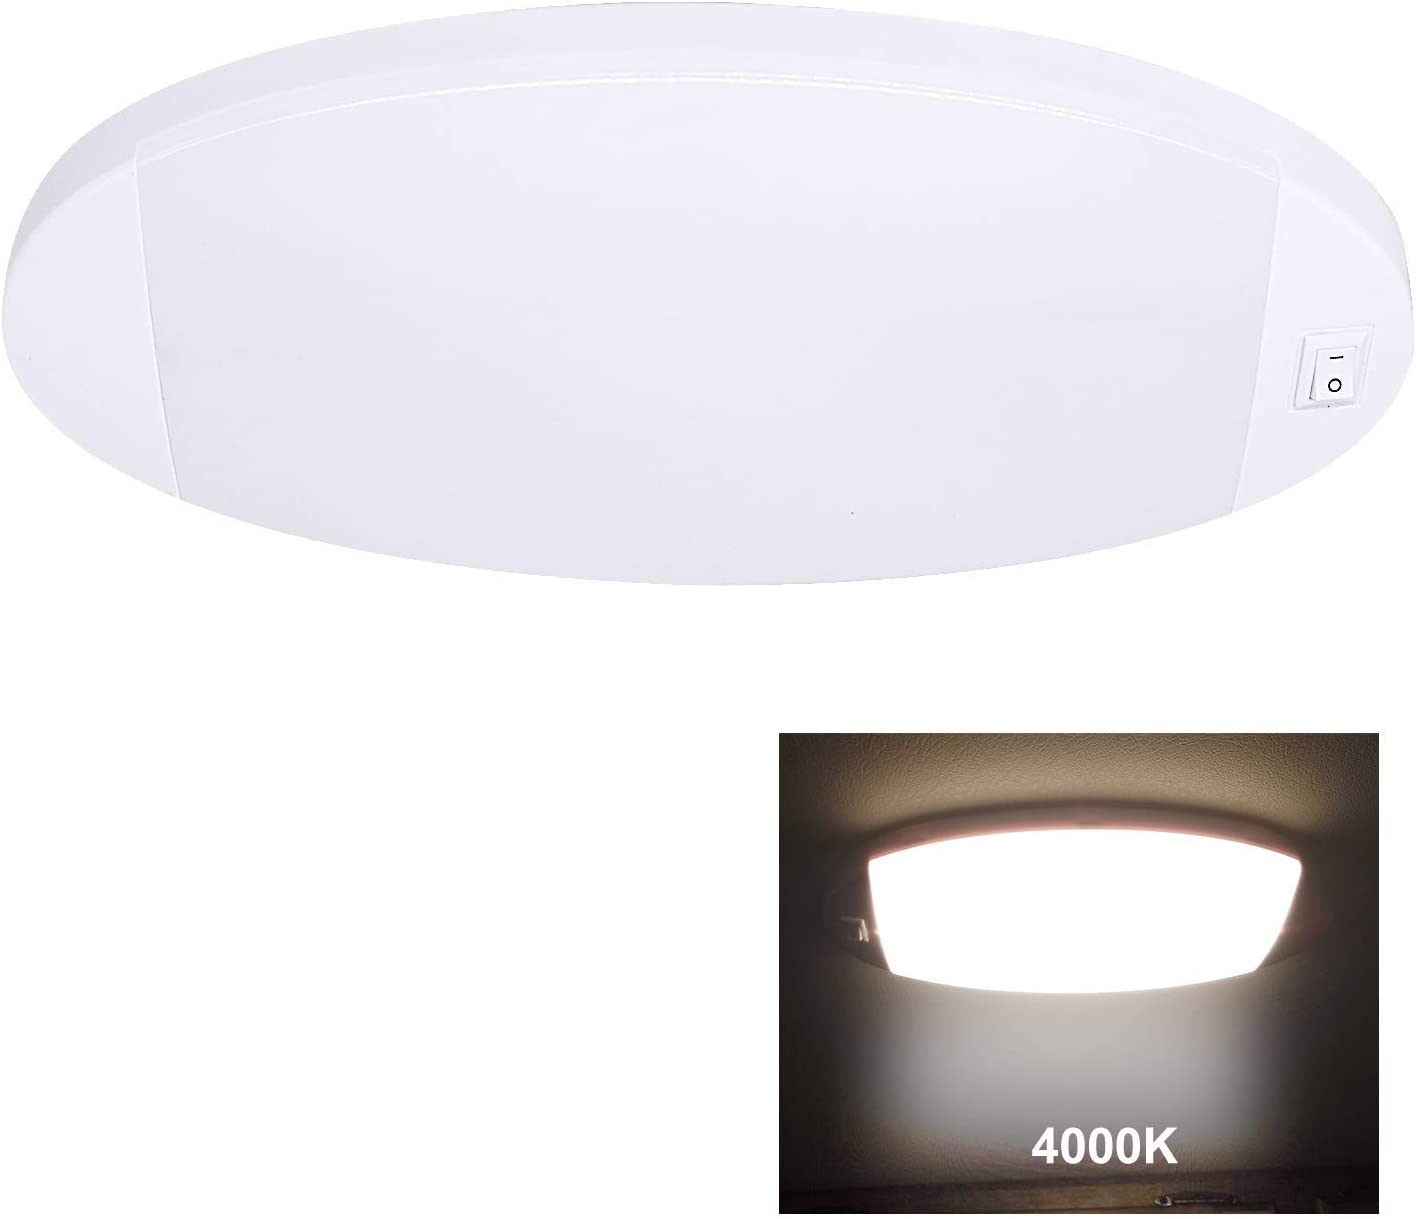 Facon LED 12V Bright Pancake Light Interior Ceiling Dome Light 6W 470 LM with On//Off Switch upgrated 4000K Cool White Light